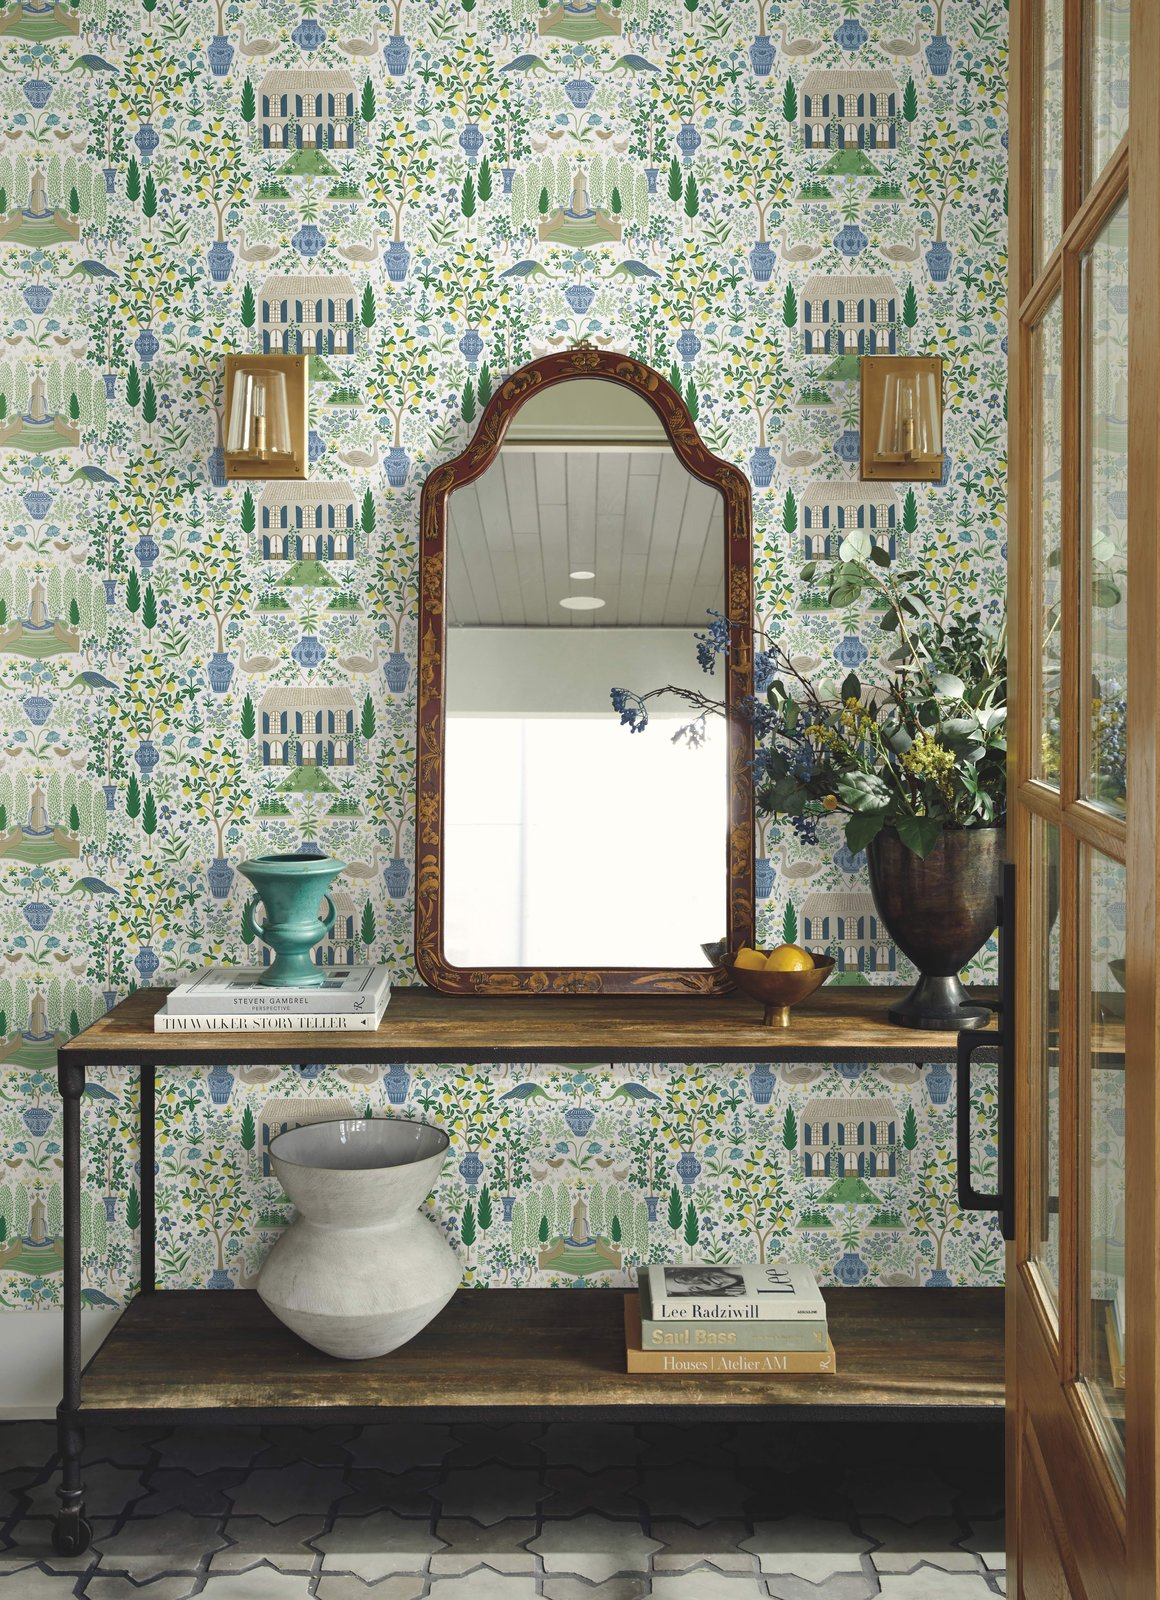 Photo 3 of 3 in Wallpaper Your Way to a Whimsical Home With Rifle Paper Co.'s New Offerings